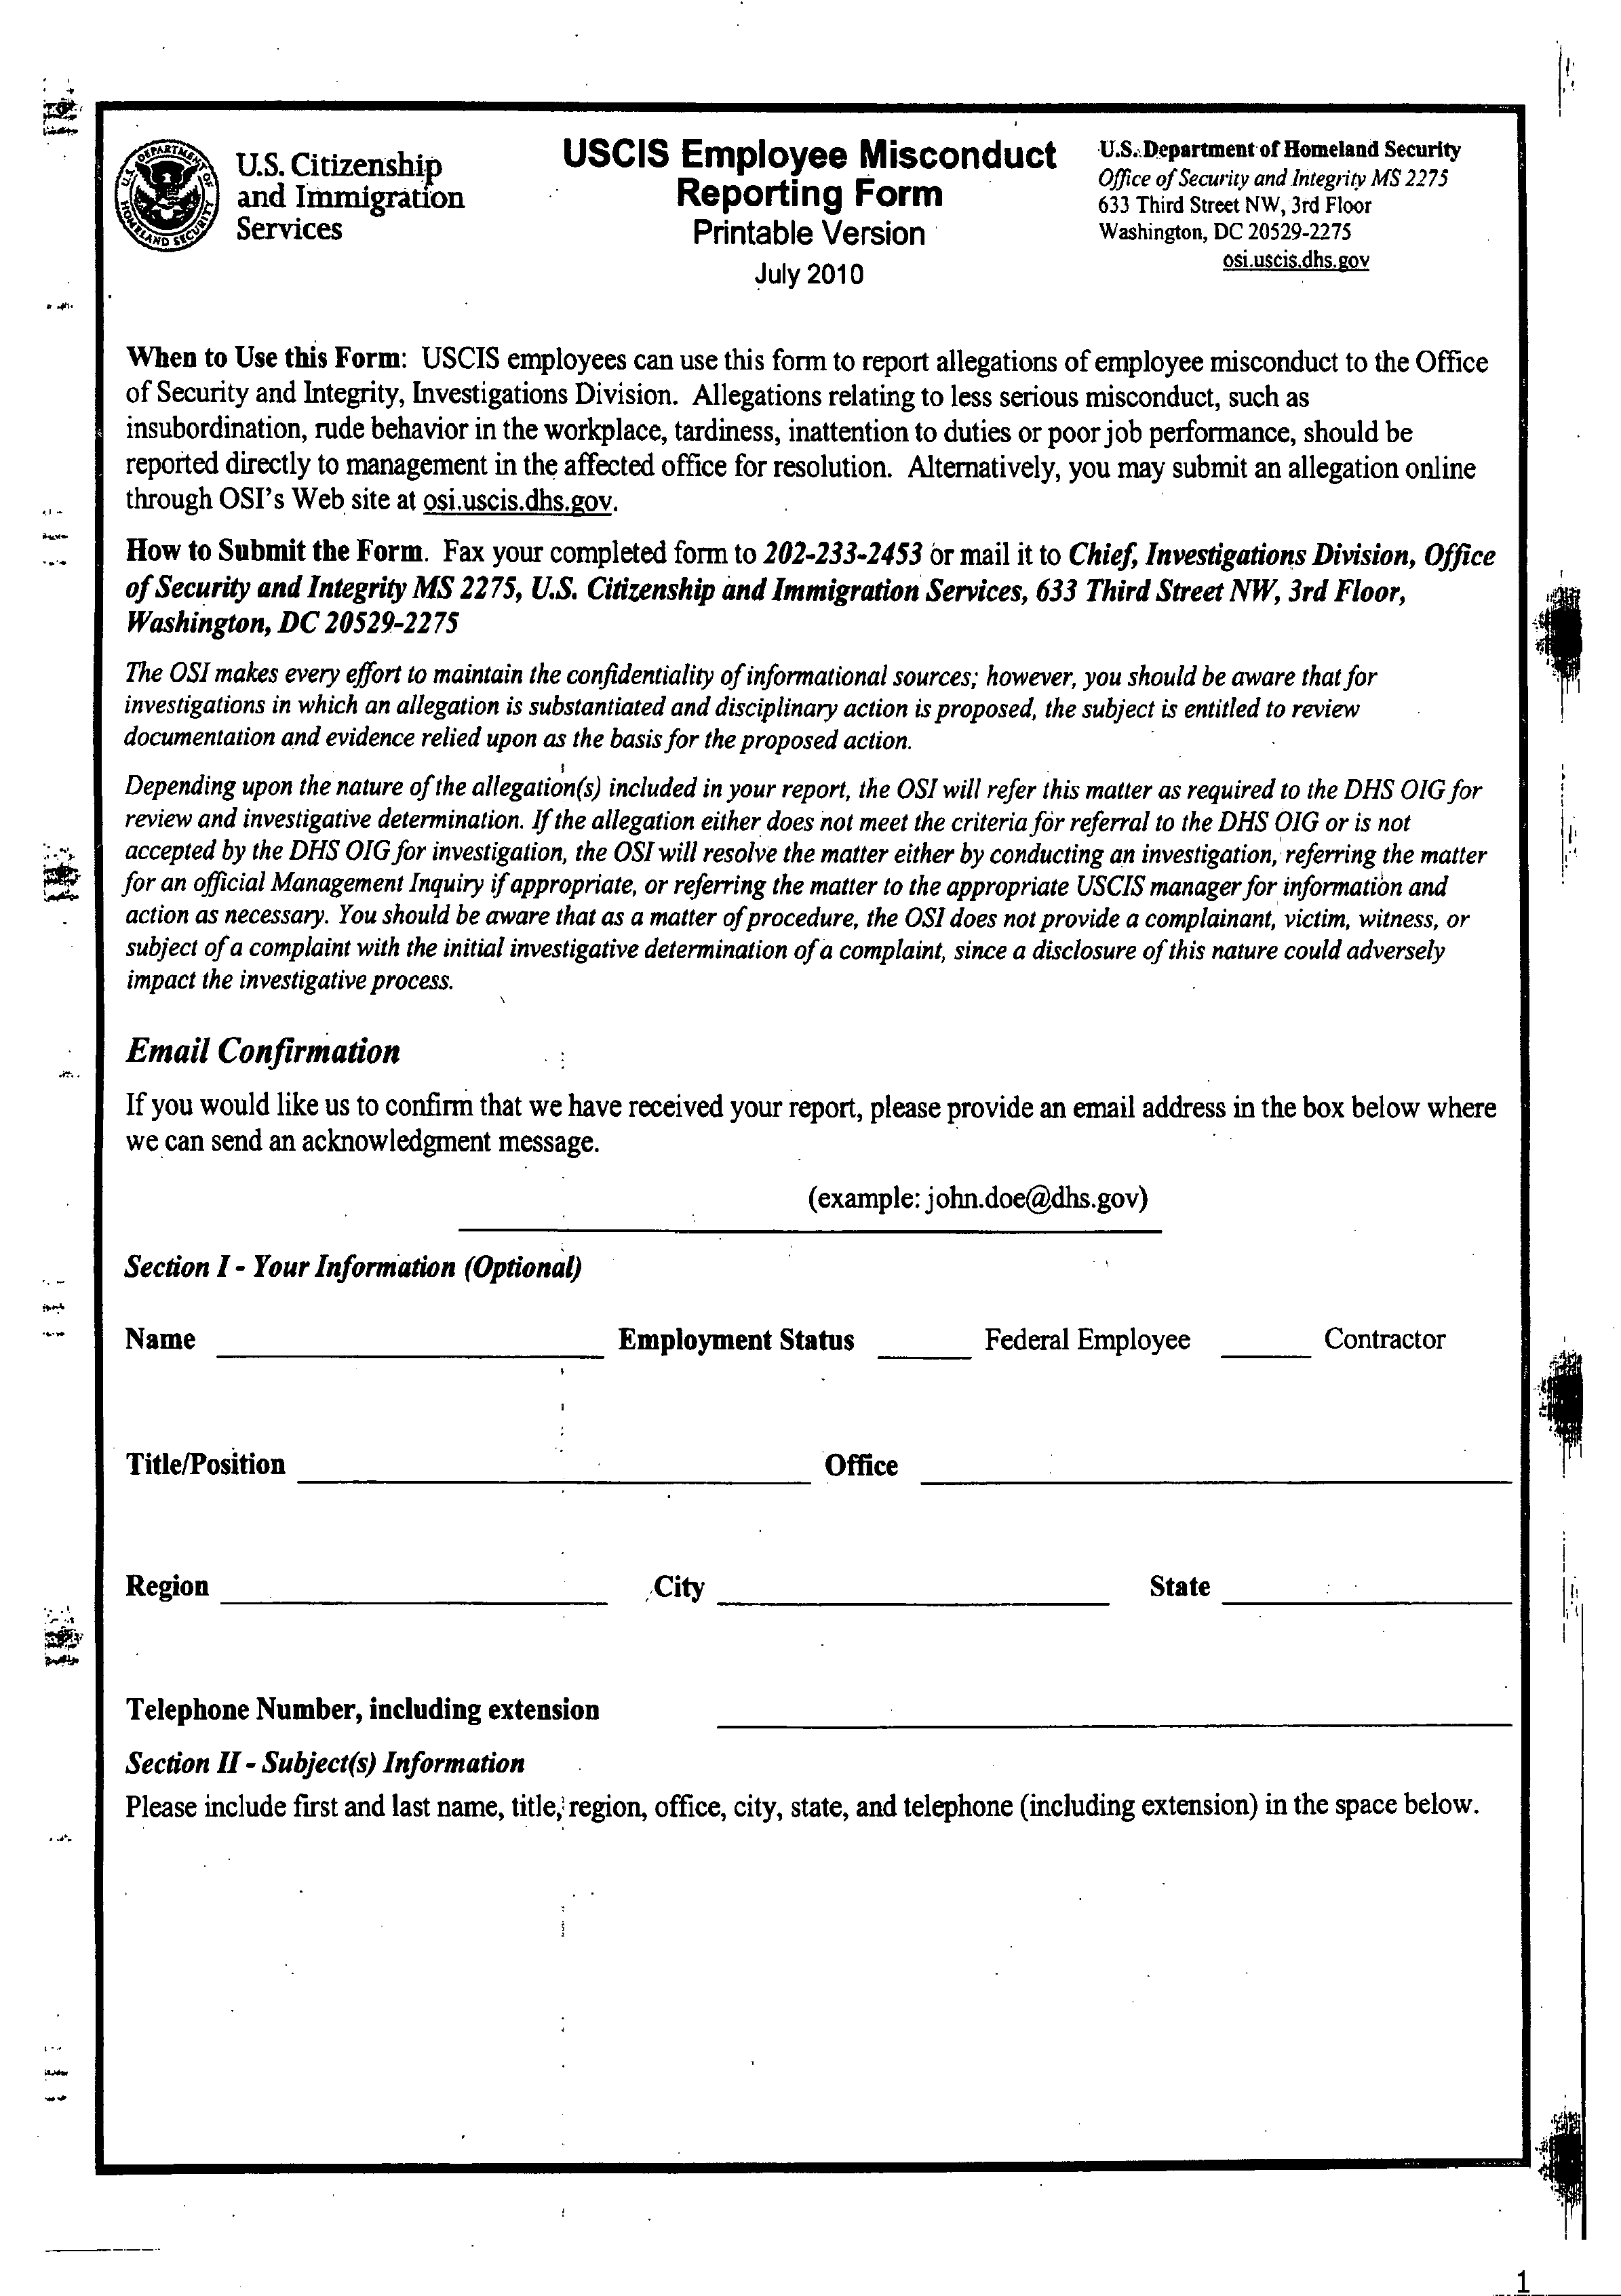 Employee Misconduct Form Format Free Download